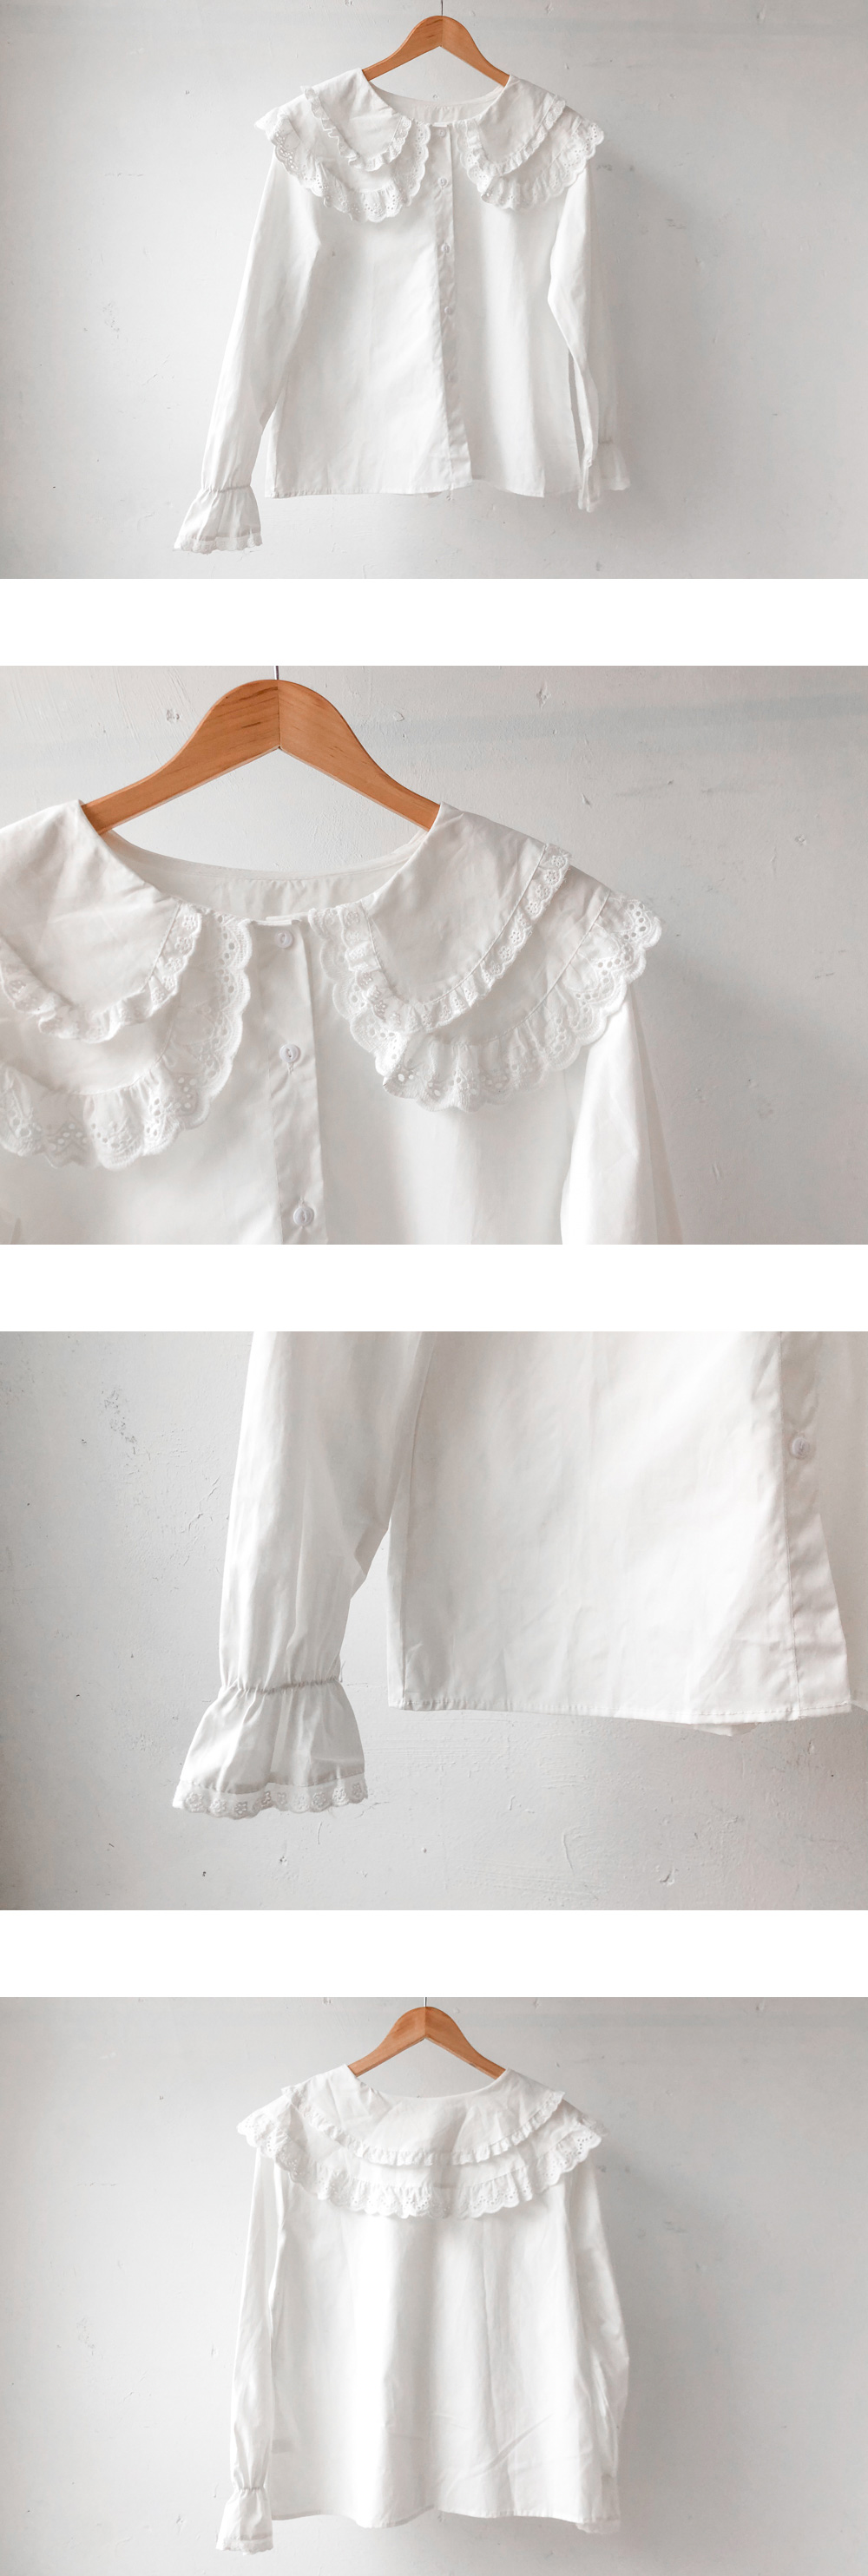 Double-collar frill cotton blouse